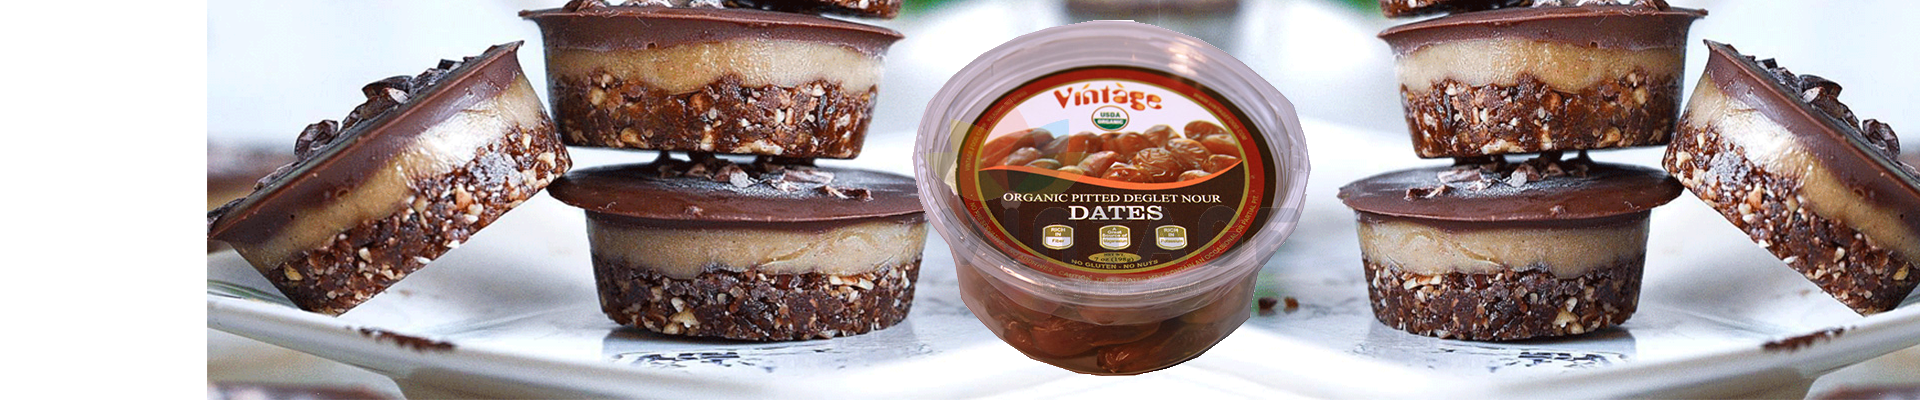 NOW AVAILABLE! Organic Pitted Dates !